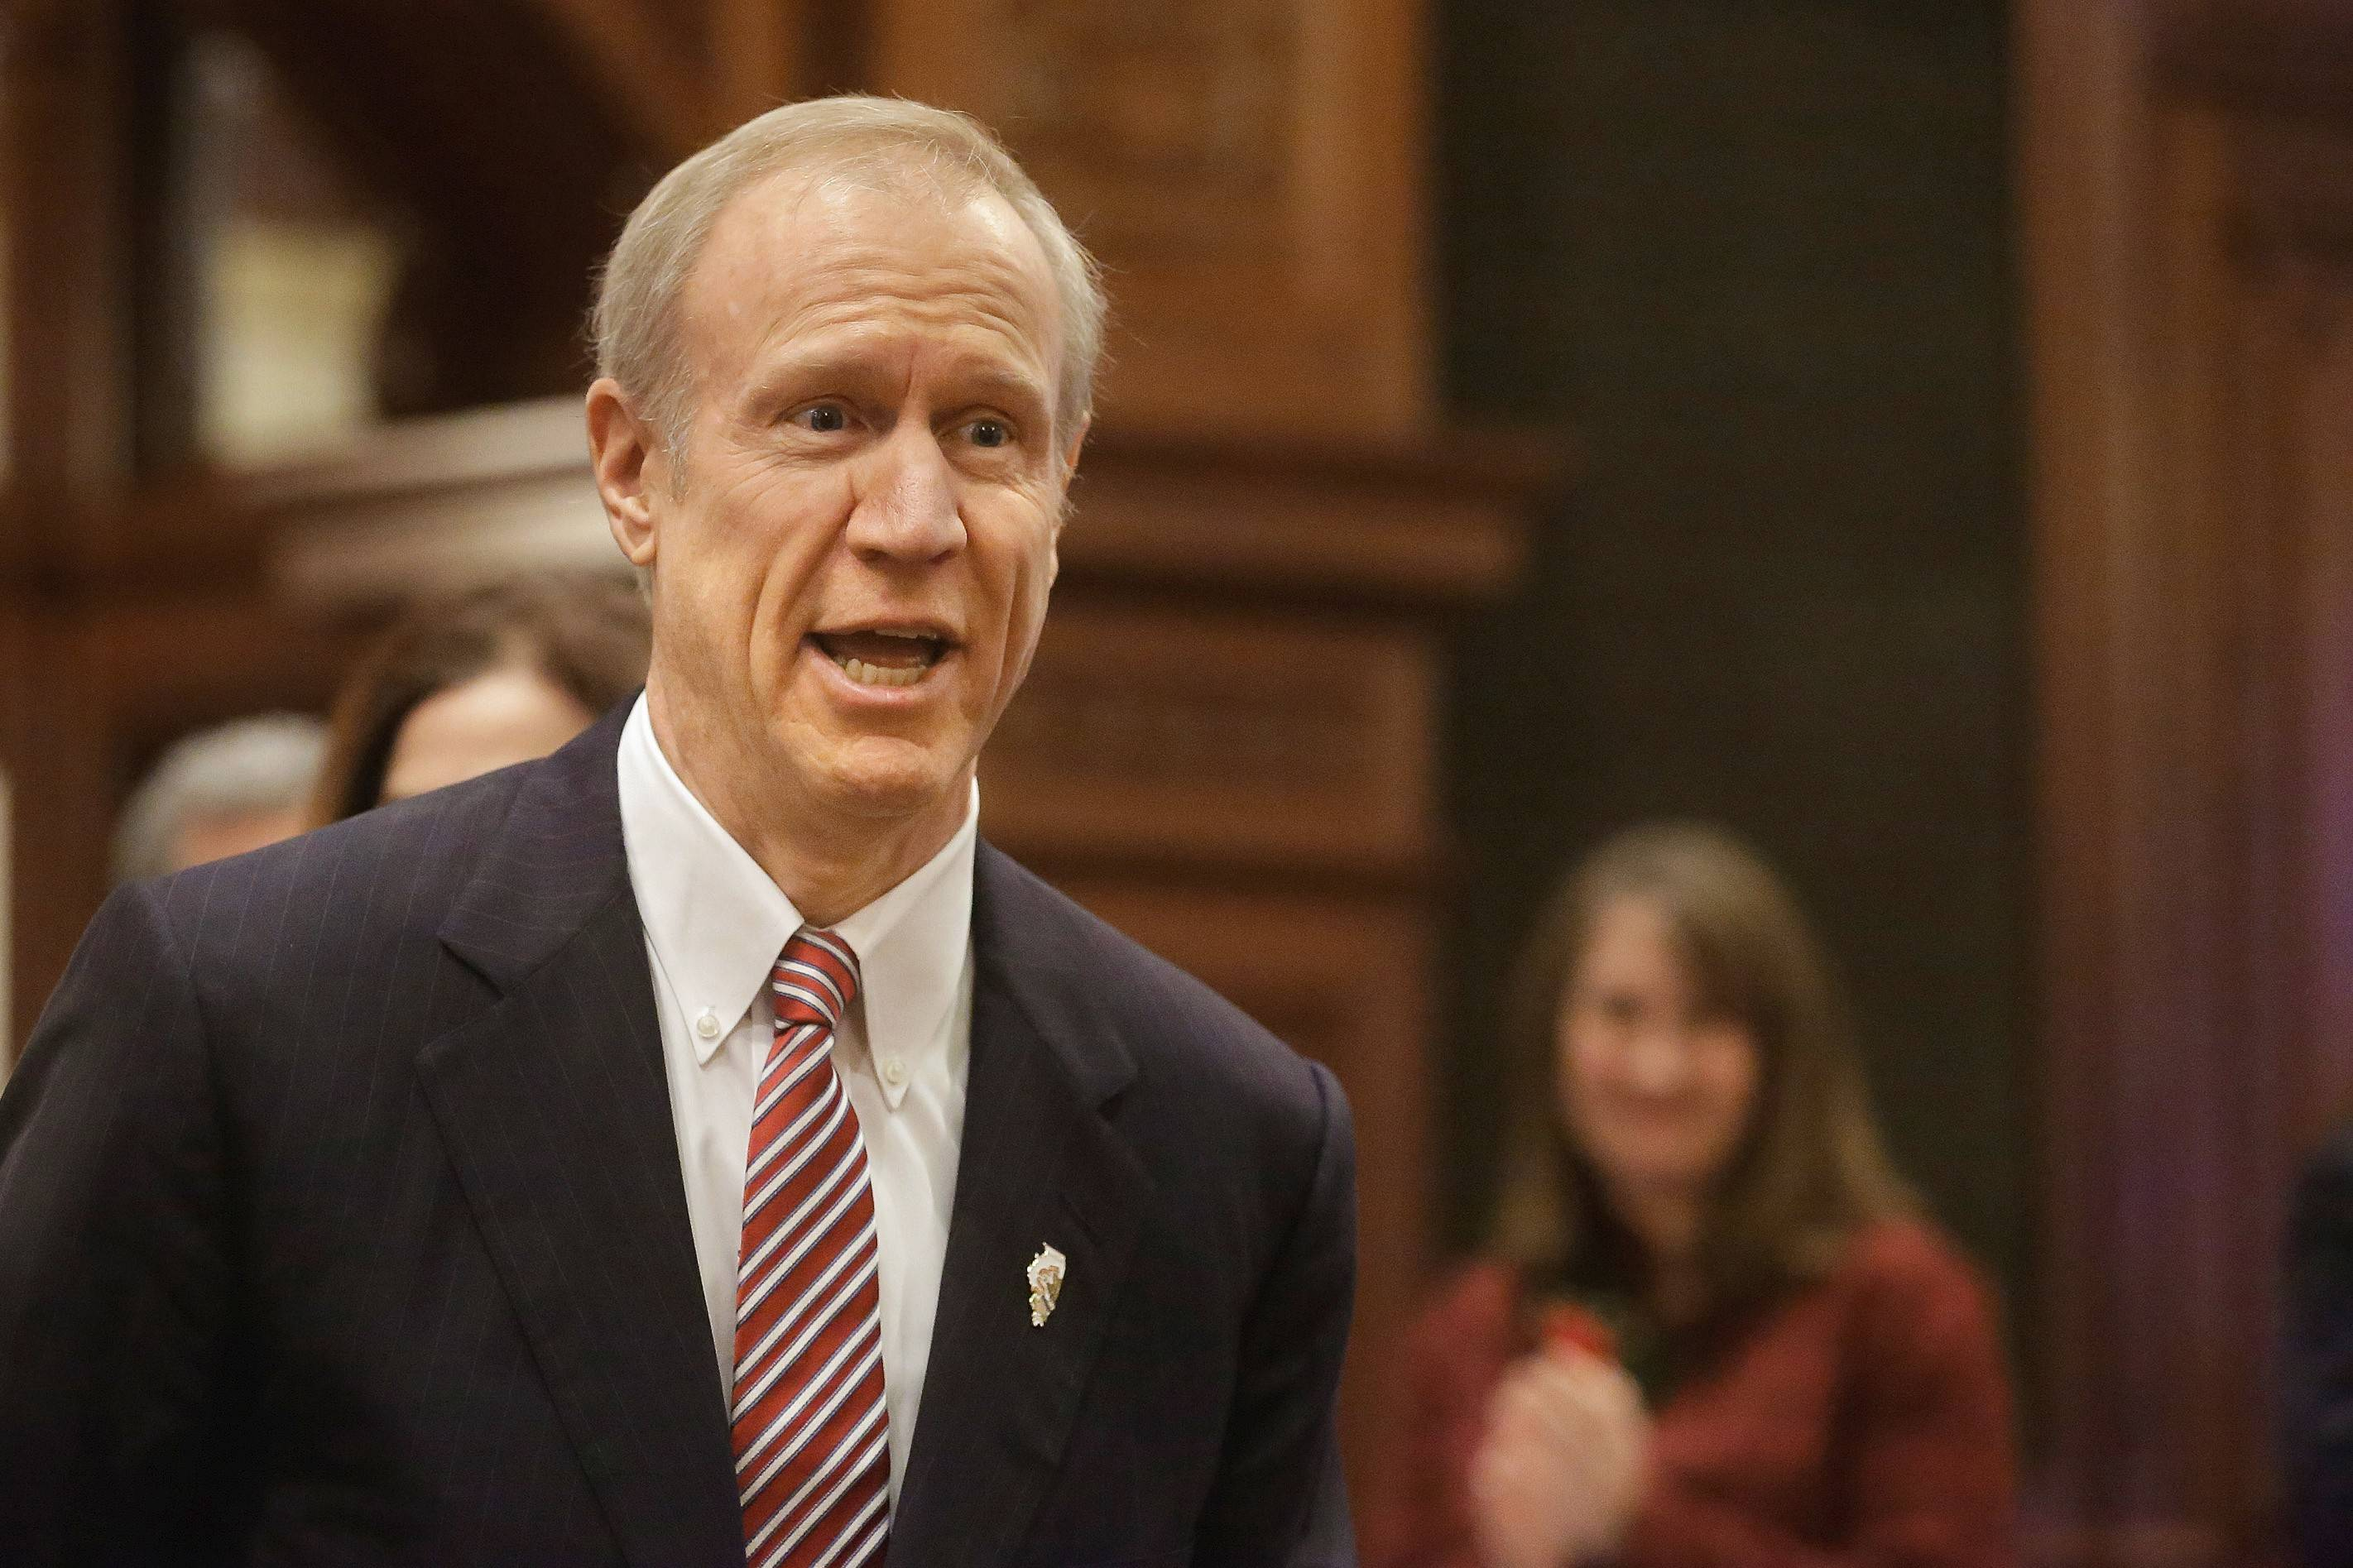 Illinois Gov. Bruce Rauner acknowledges applause before delivering his State of the State address to a joint session of the General Assembly, Wednesday at the Capitol in Springfield.